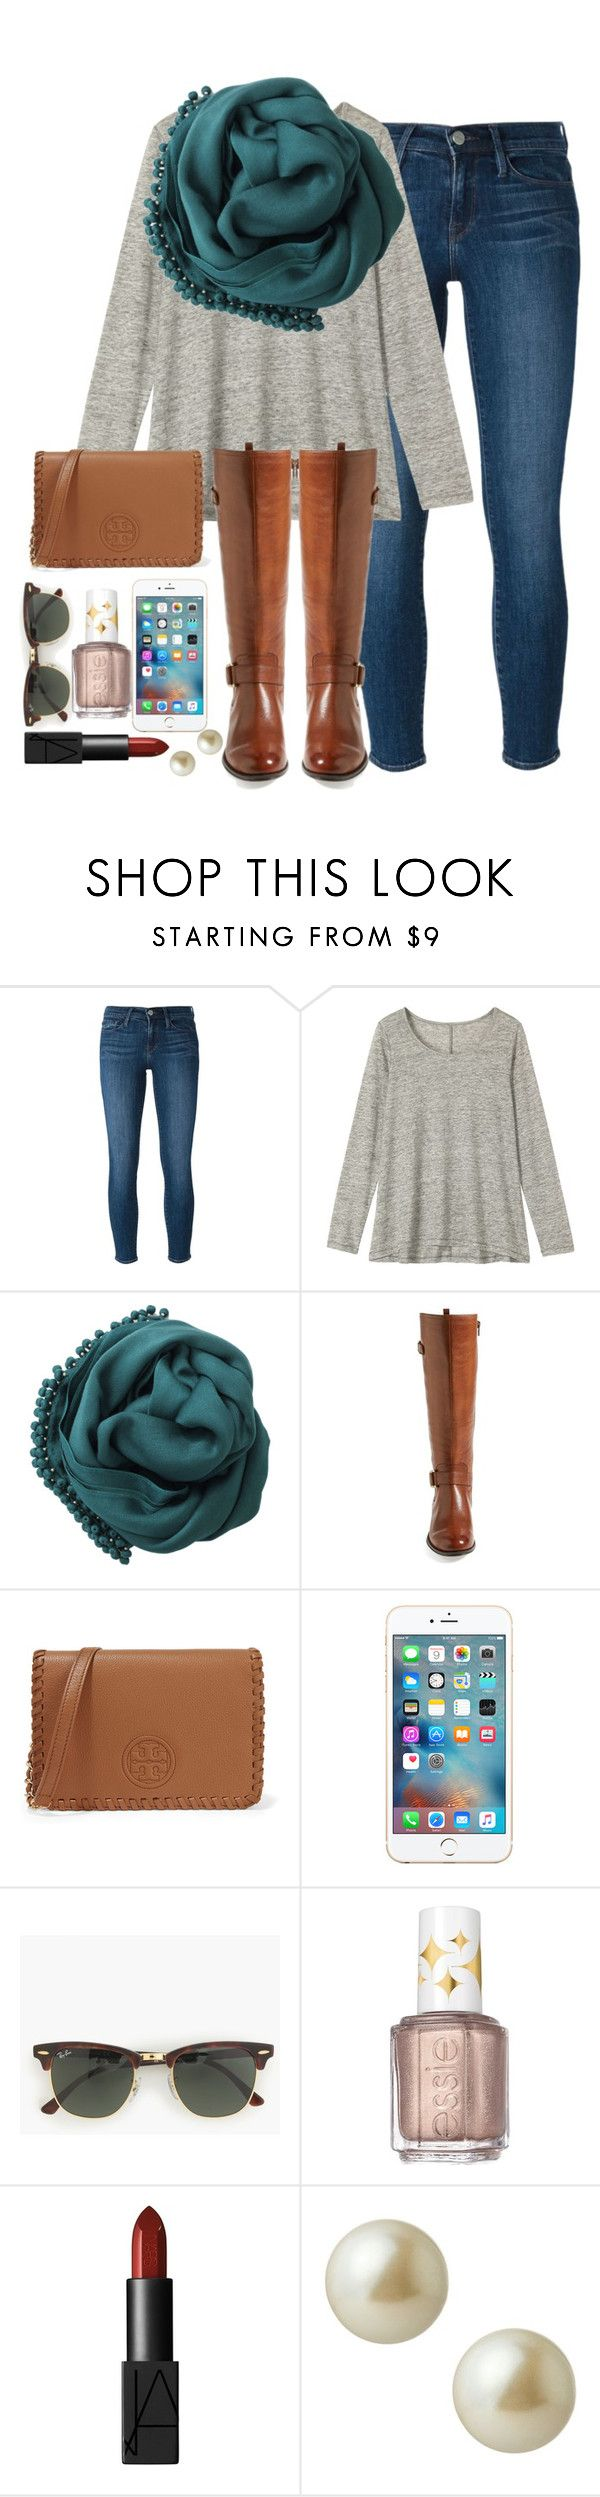 """""""idek"""" by elizabethannee ❤ liked on Polyvore featuring Frame Denim, Toast, Bajra, Naturalizer, Tory Burch, J.Crew, Essie, NARS Cosmetics and Carolee"""